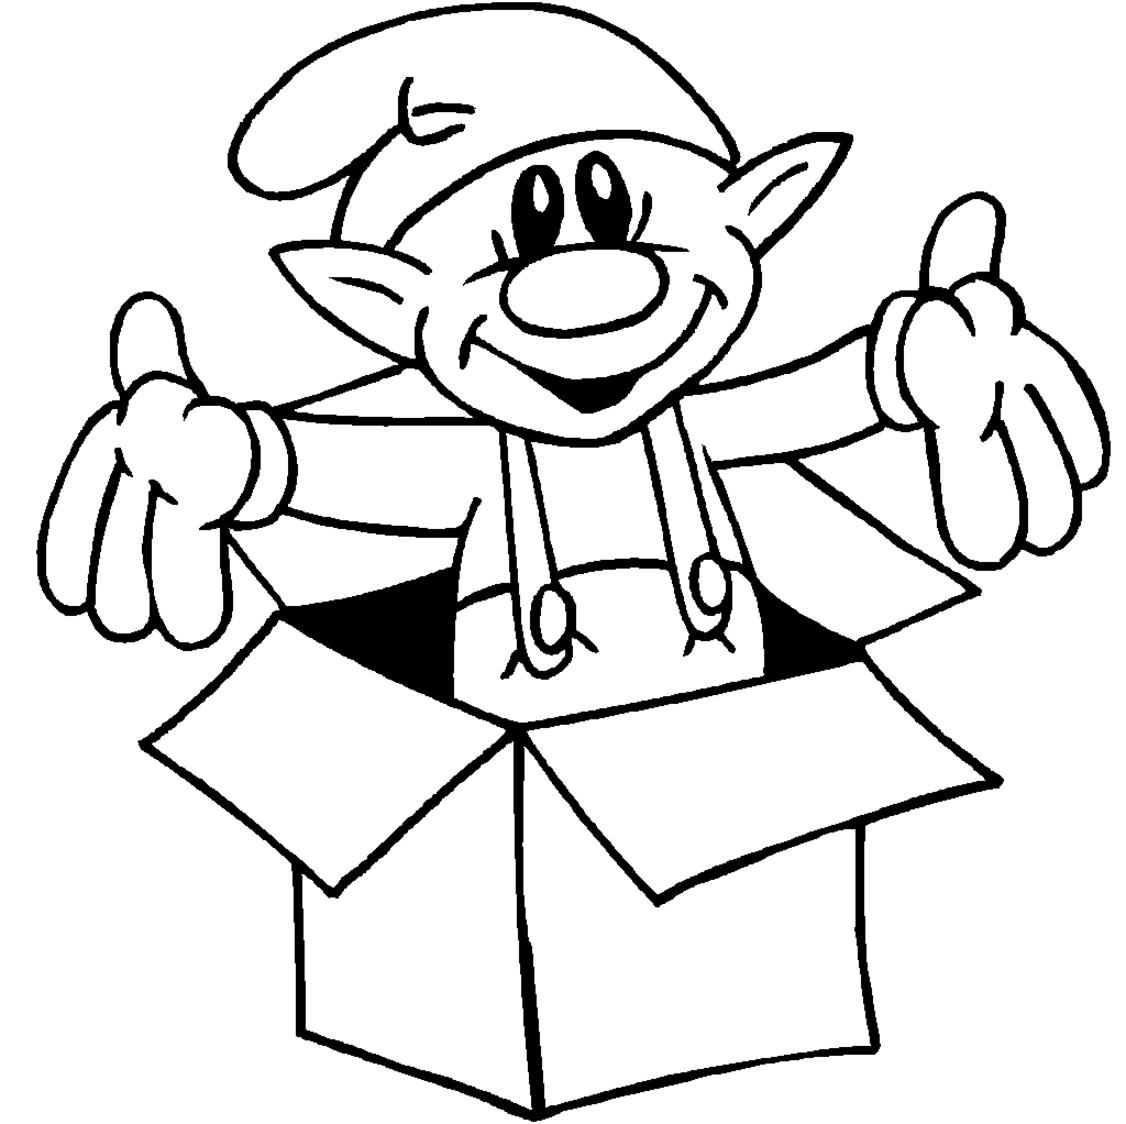 Christmas Coloring Pages Elf Elf Christmas Coloring Pages